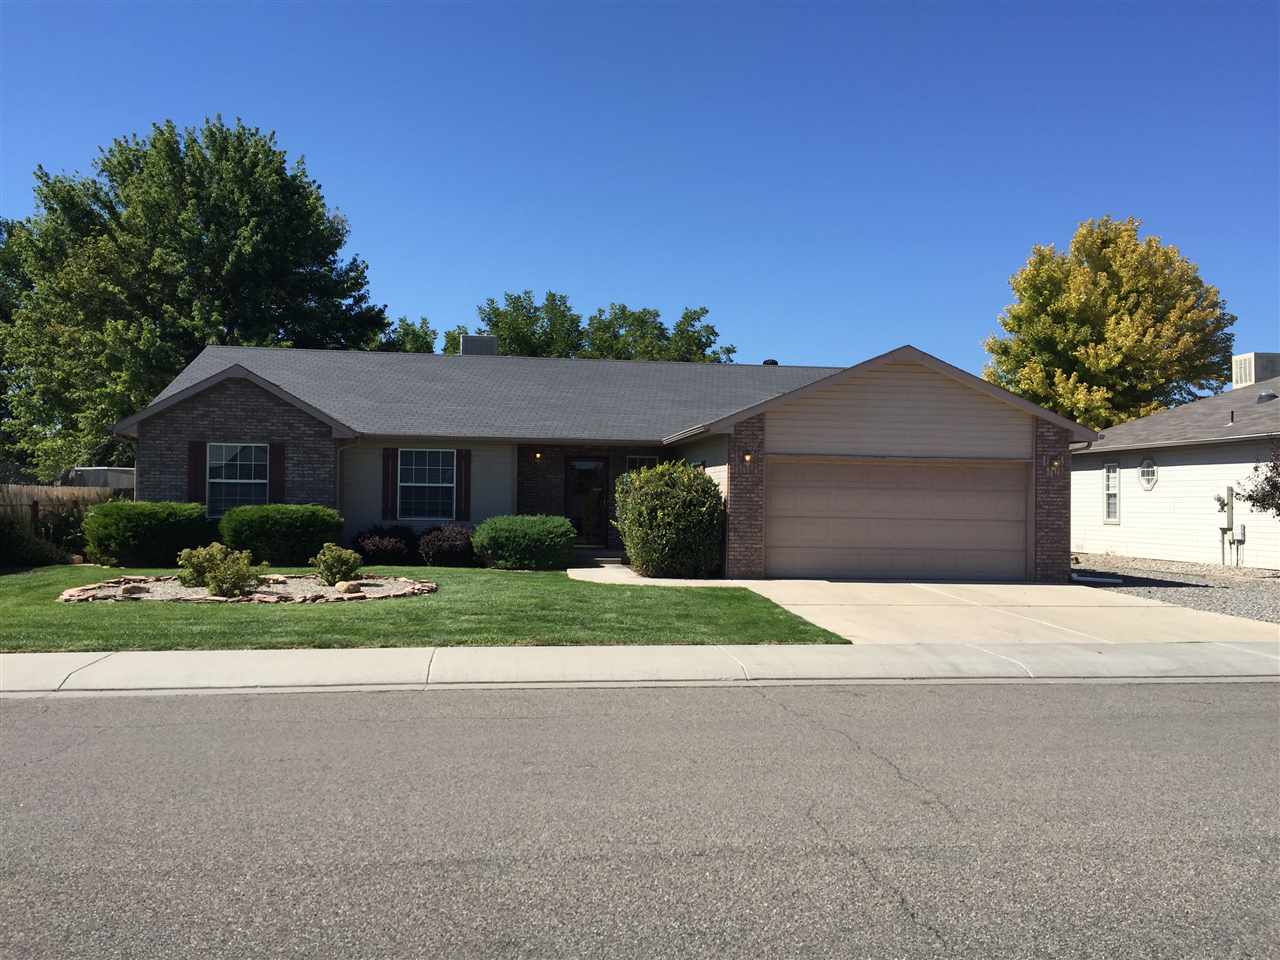 725 24 3/4 Road, Grand Junction, CO 81505